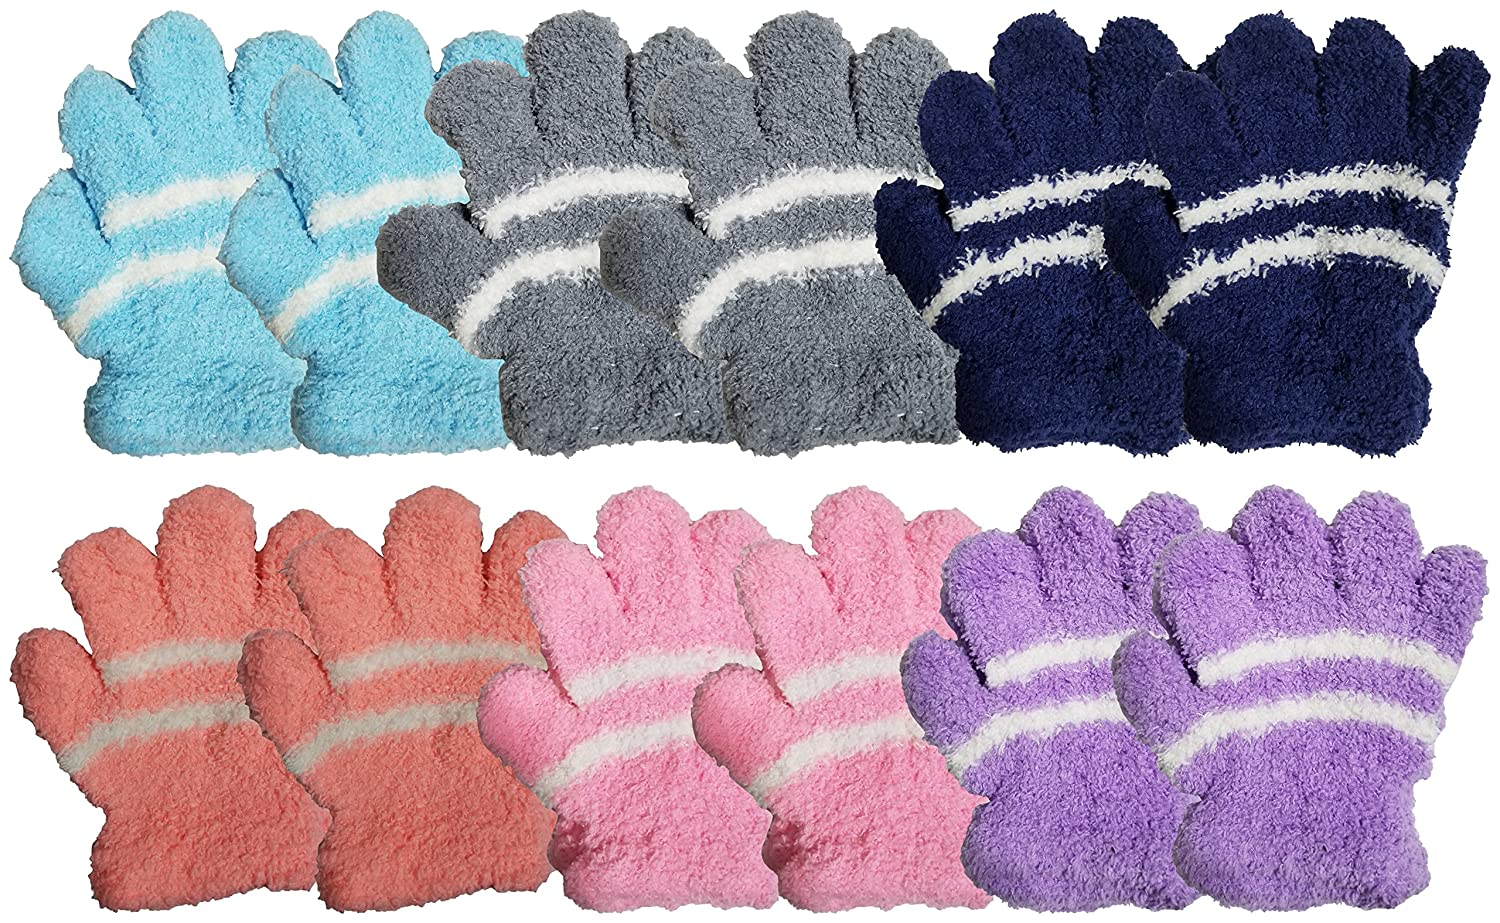 12 Pairs Soft Fuzzy Magic Gloves for Women or Girls, Chenille Winter Glove Fun Colorful Plush